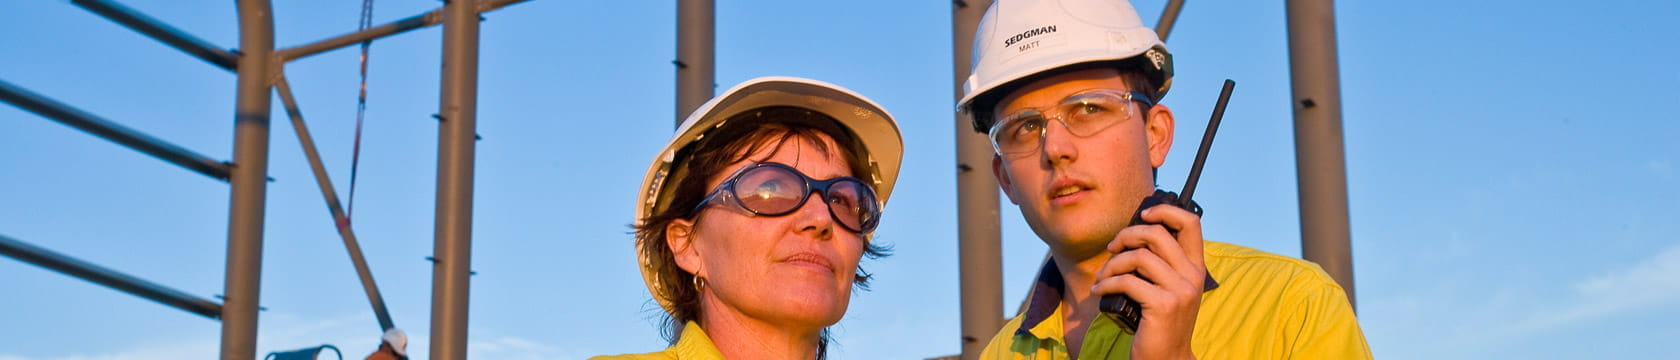 a woman and a man in front of mineral processing infrastructure